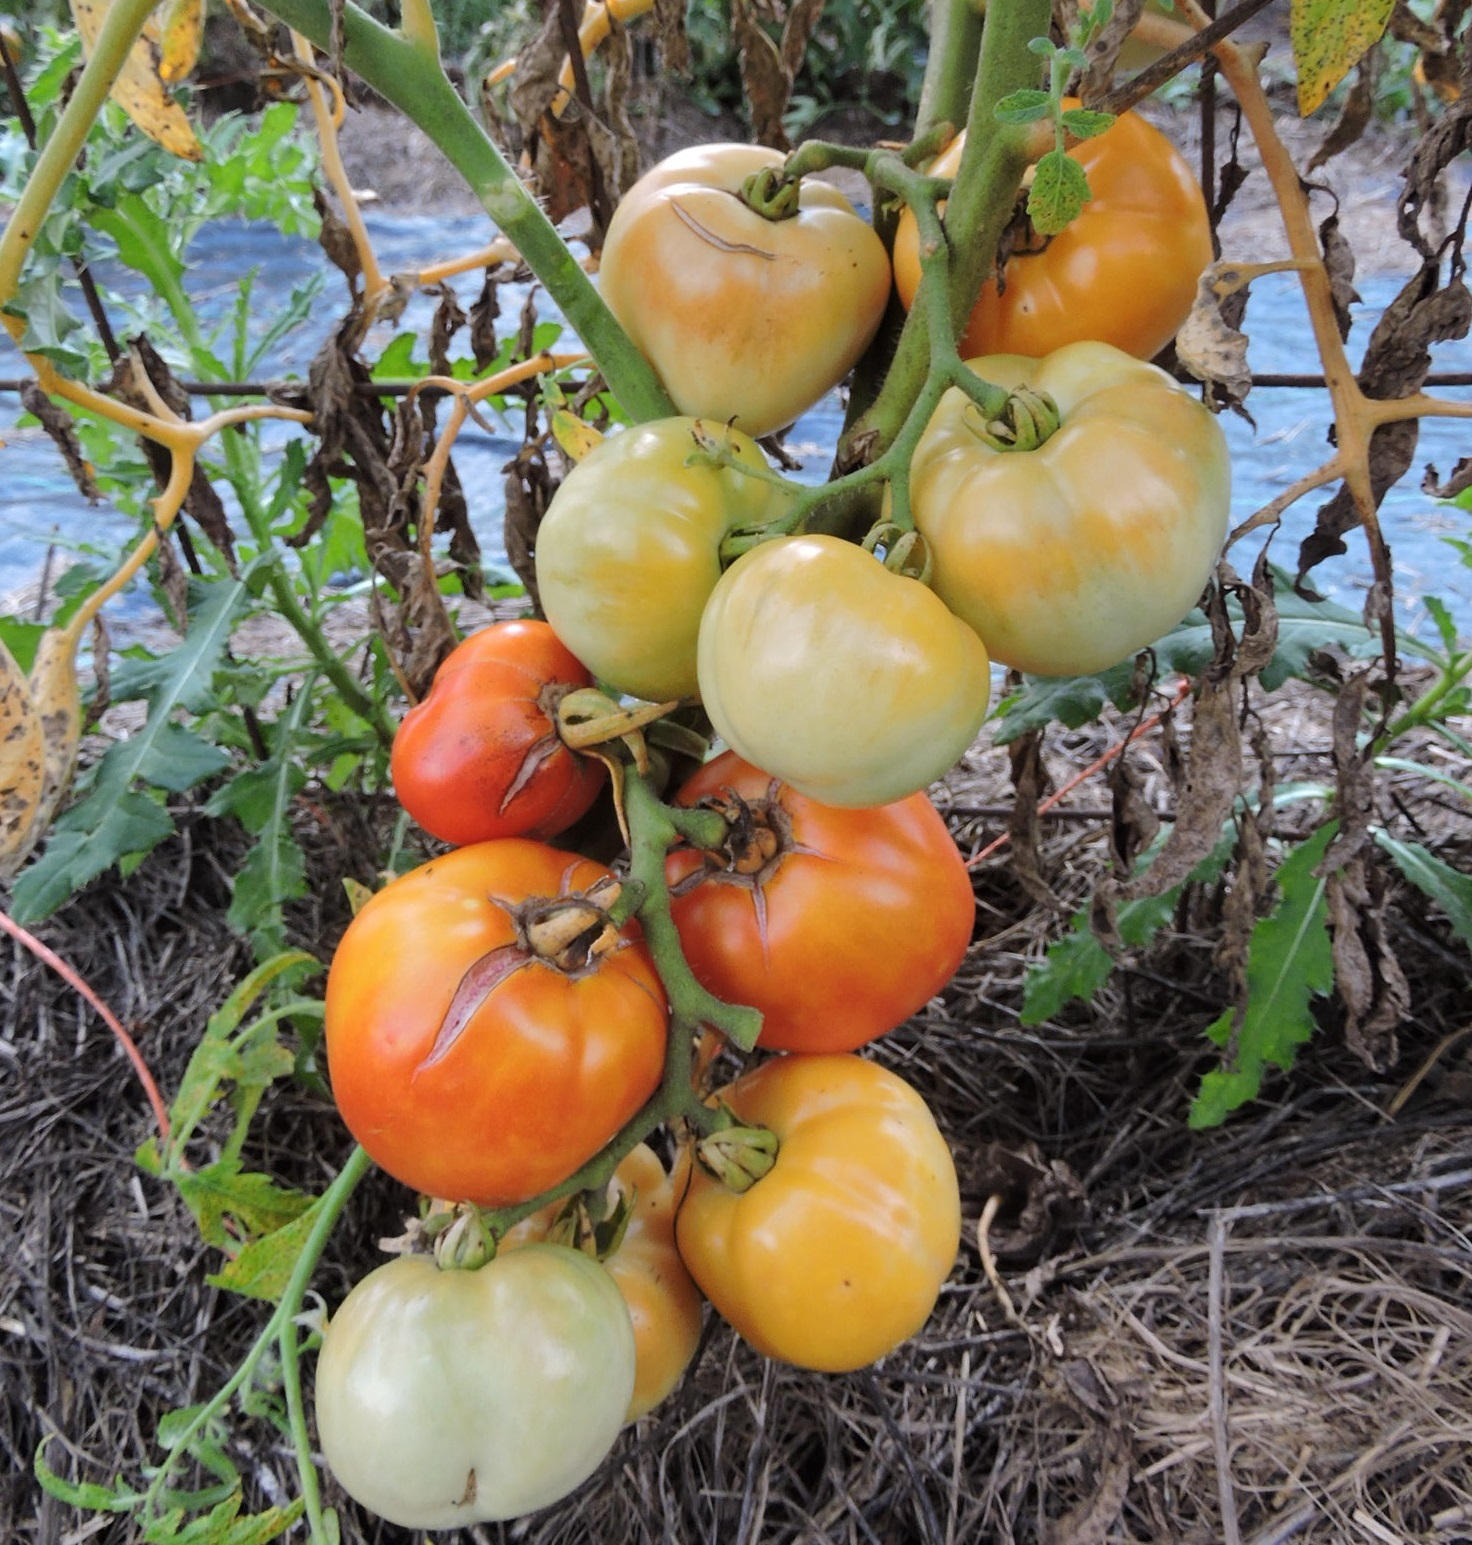 Through field Evaluations, Seed Savers Exchange recently identified its Tomato 364, 'Lutescent,' as Livingston's 'Honor Bright.'